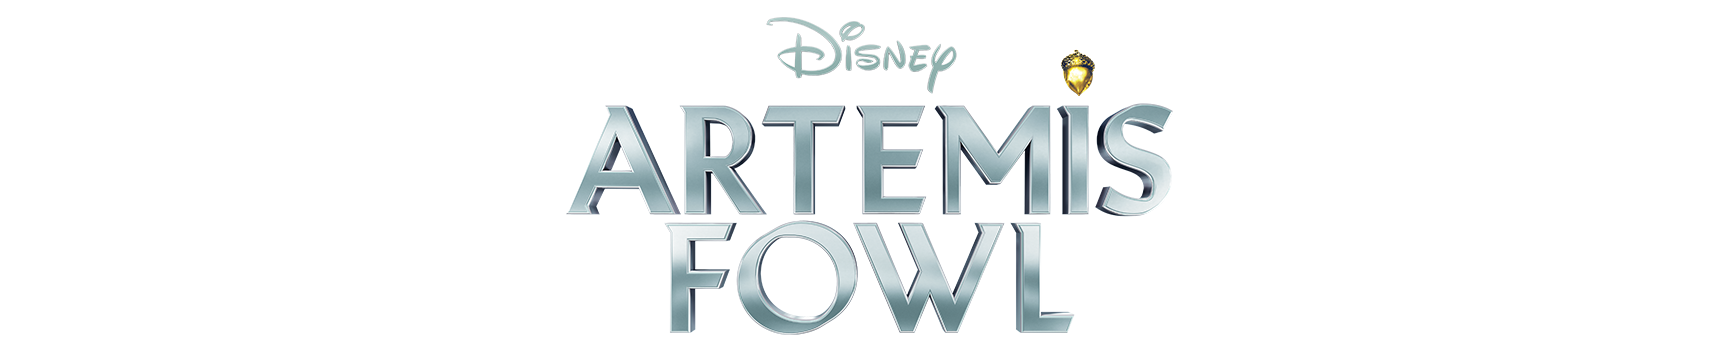 Disney's Artemis Fowl - Banner Hero Object - PayoffArt